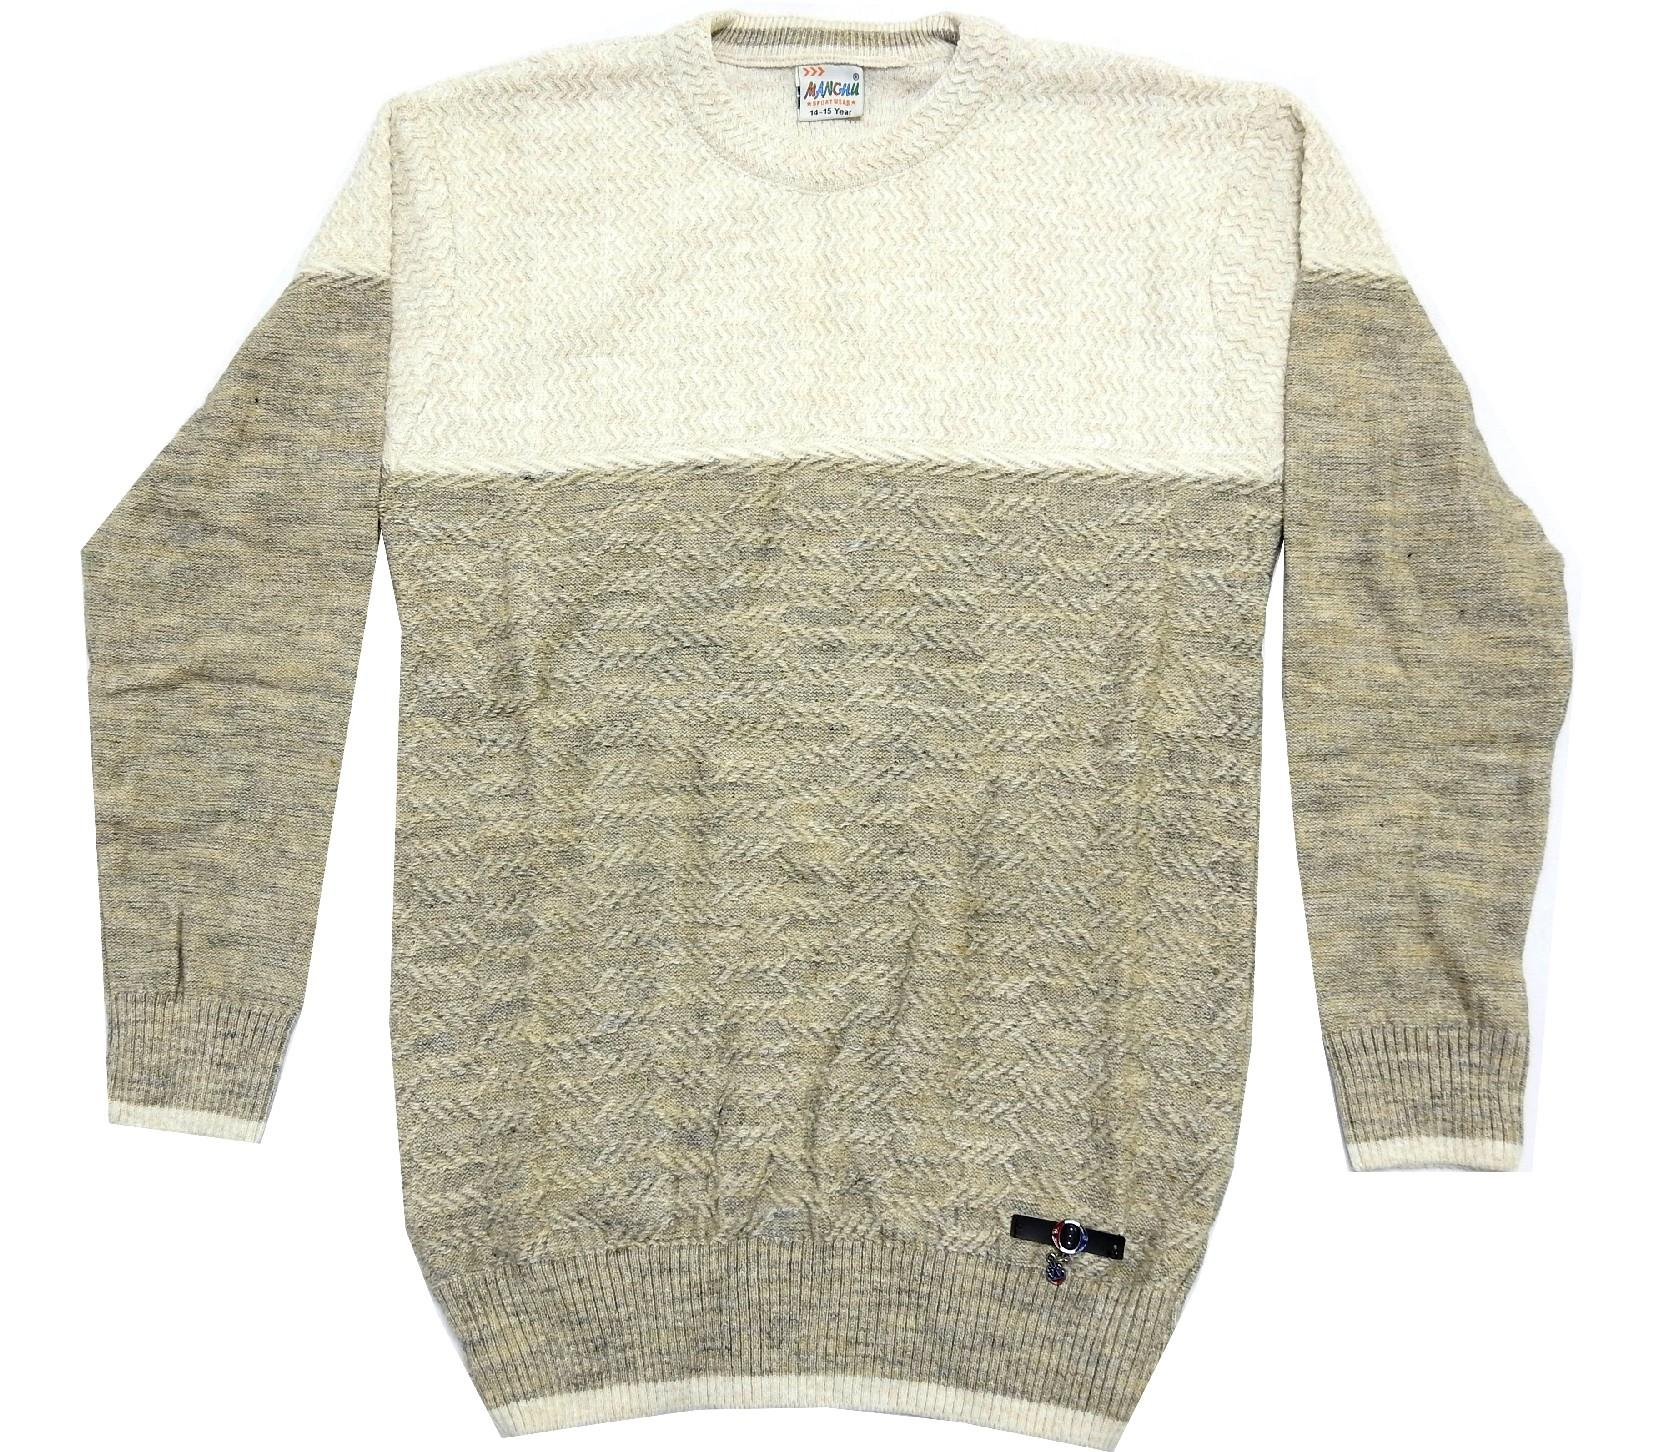 WHOLESALE KNITTED DESIGN SWEATER PULLOWER FOR BOY/KIDS AND BABY (10-12-14 AGE)